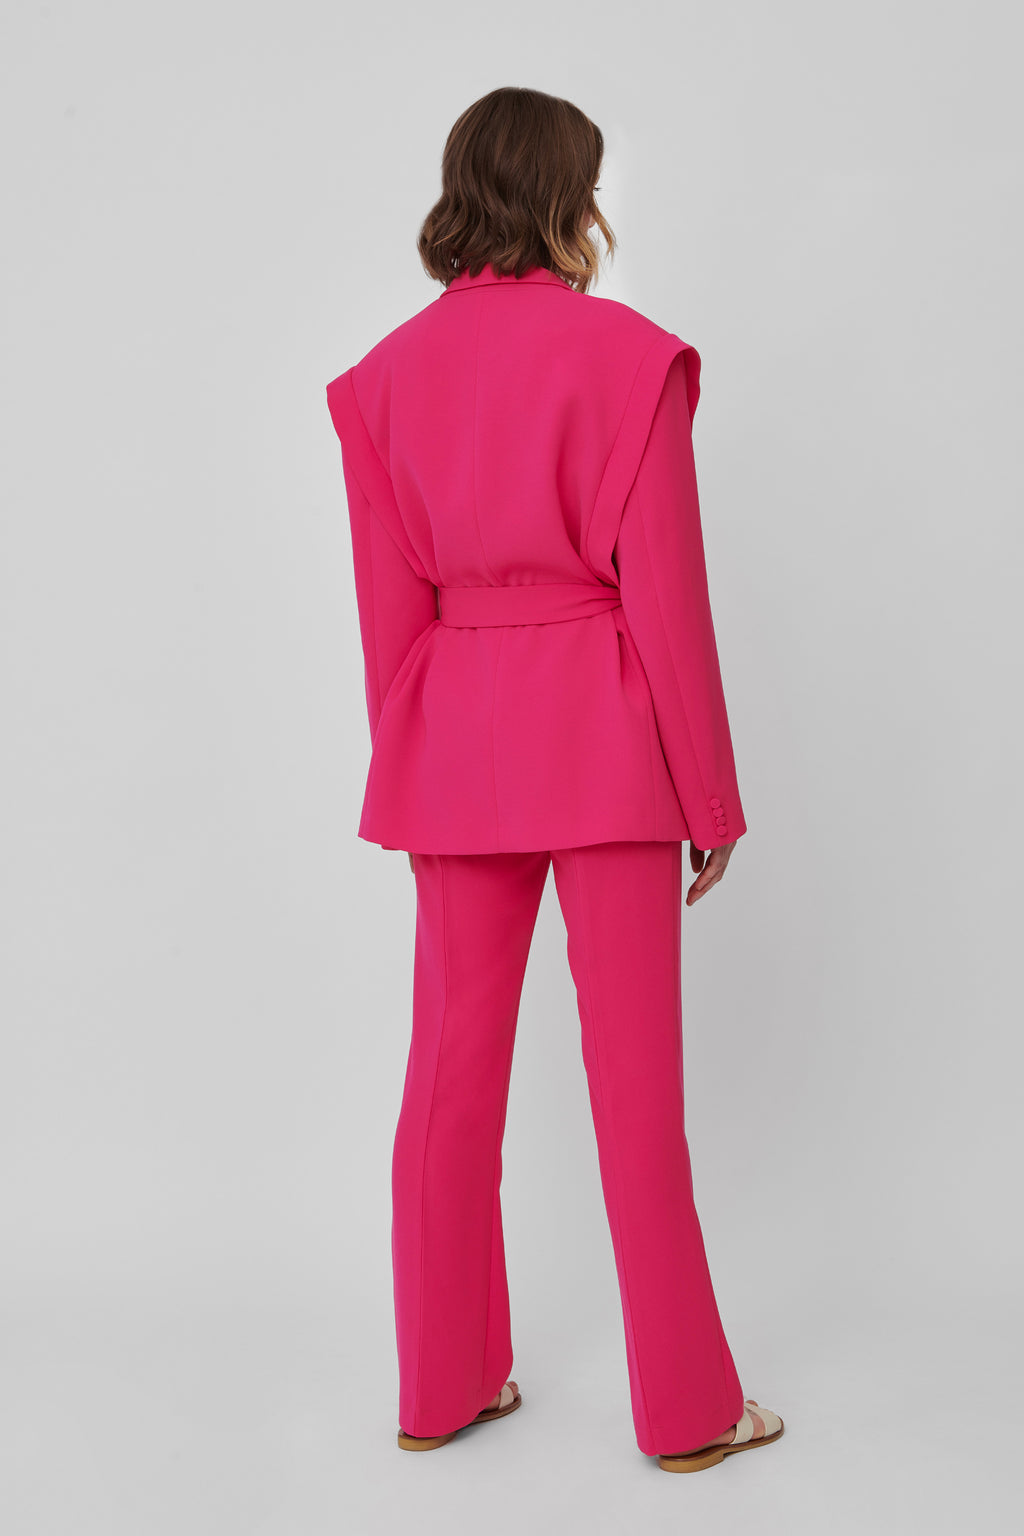 The Raspberry Crepe Lover 2.0 Blazer